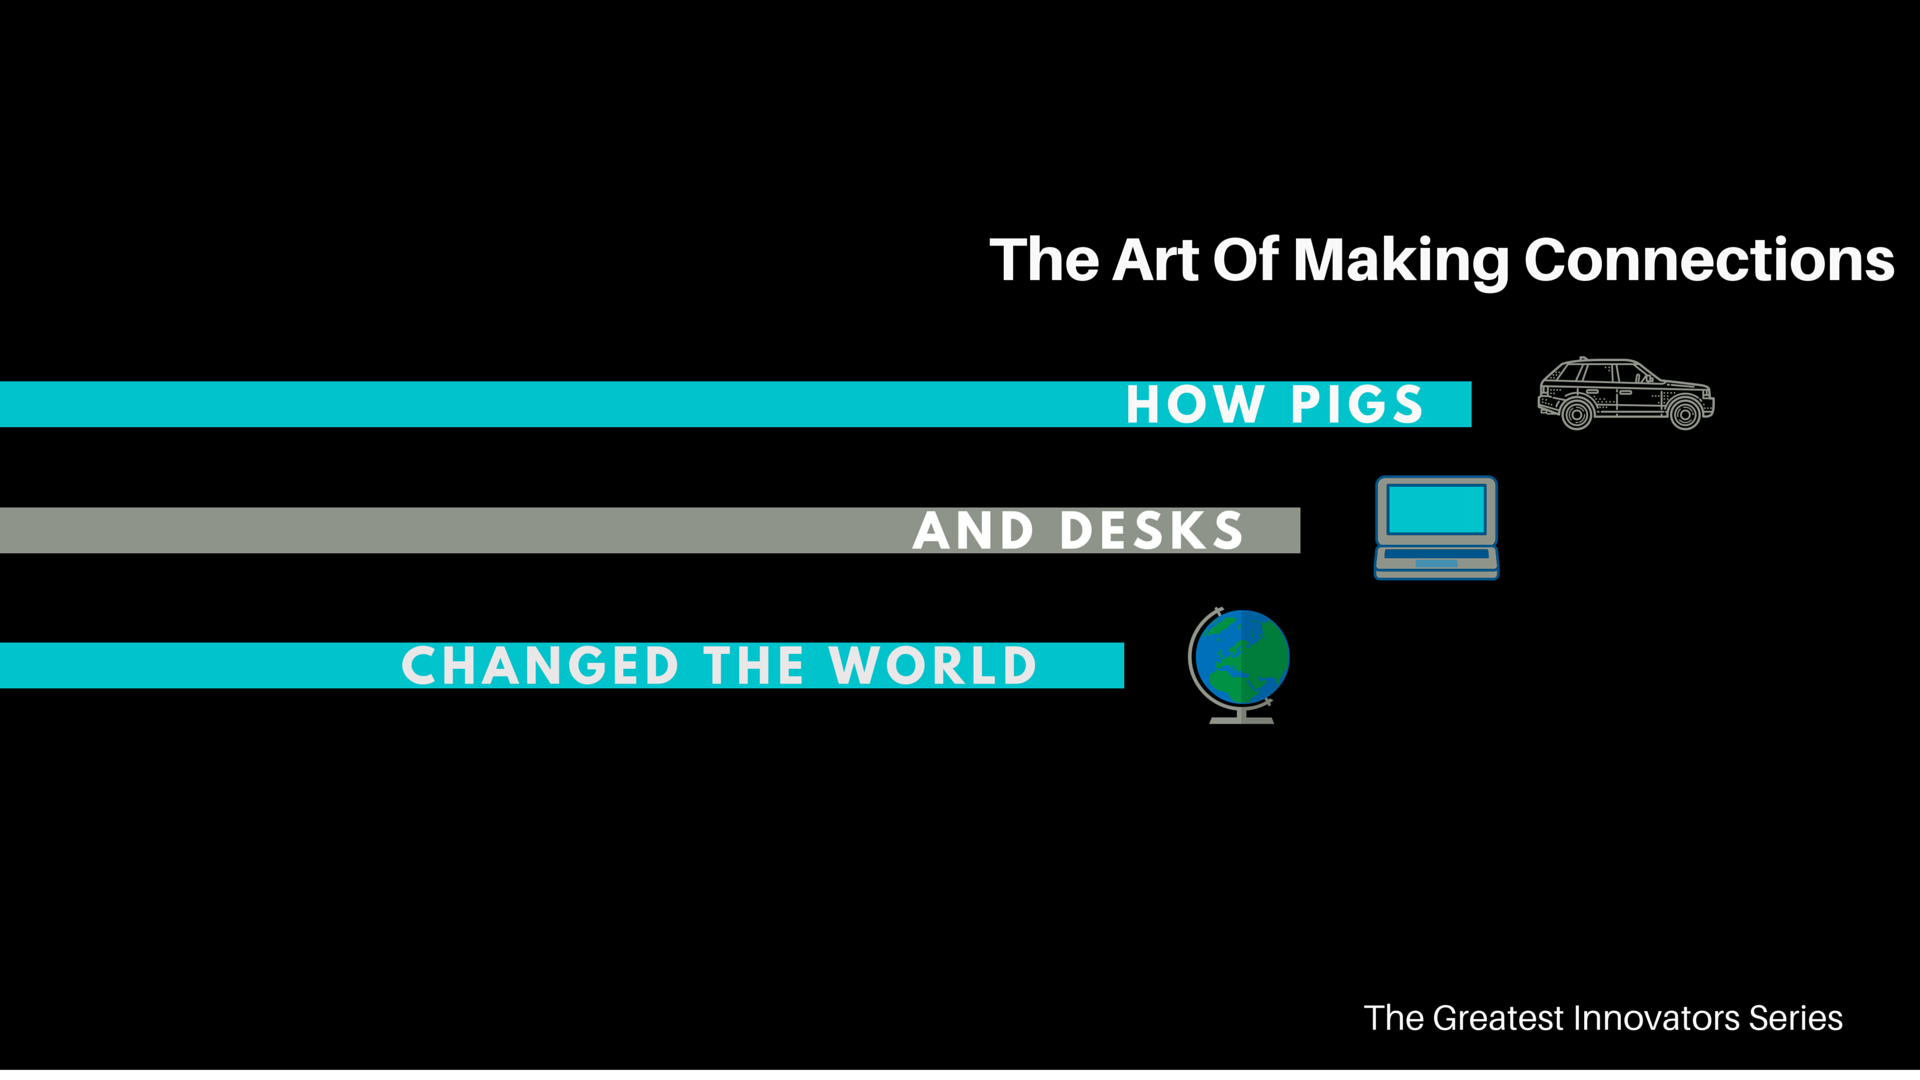 How pigs and desks changed the world - EDGE Mentoring